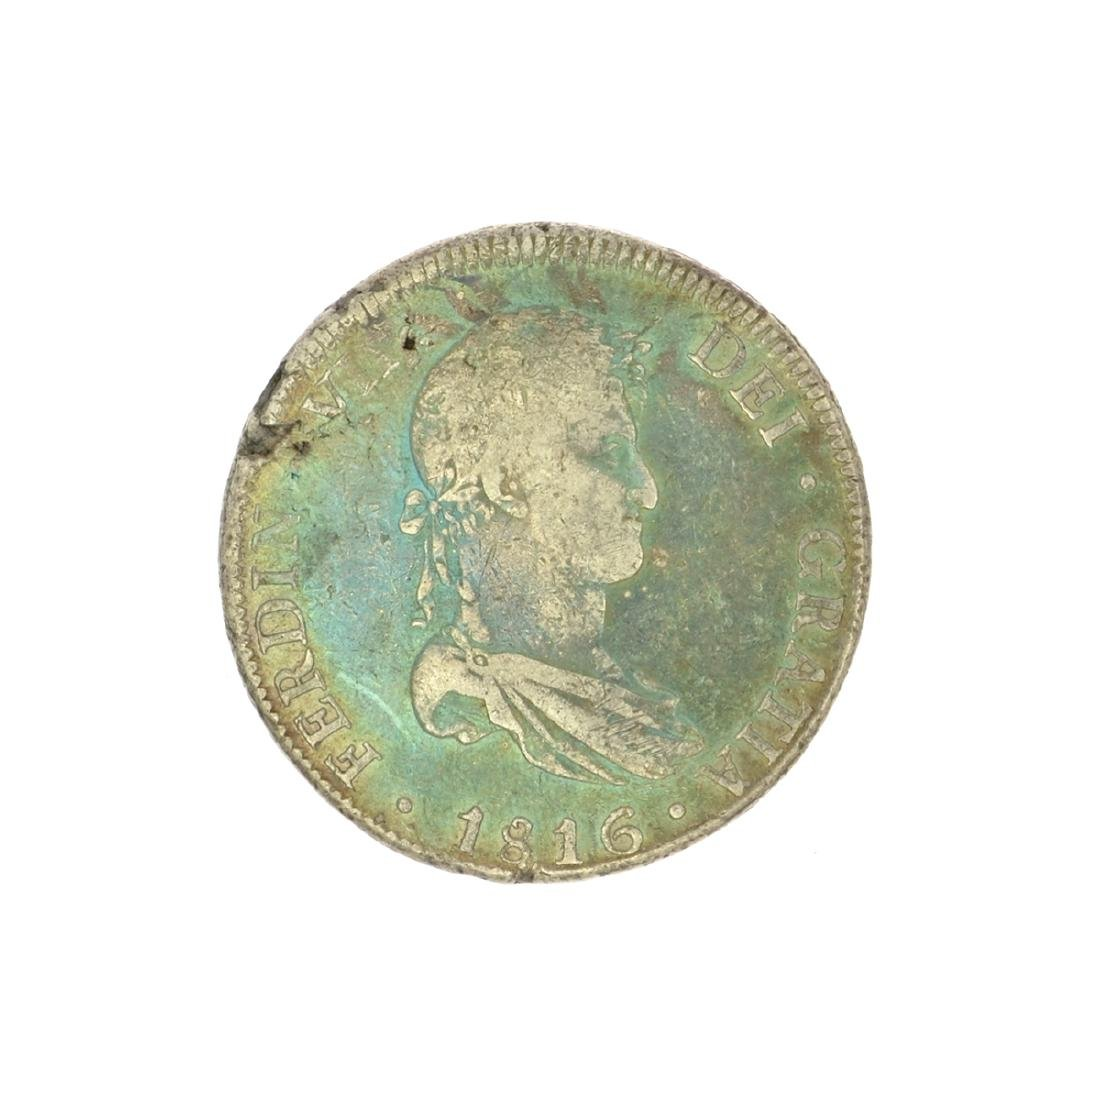 Extremely Rare Early Date 1816 Portrait Reales Very